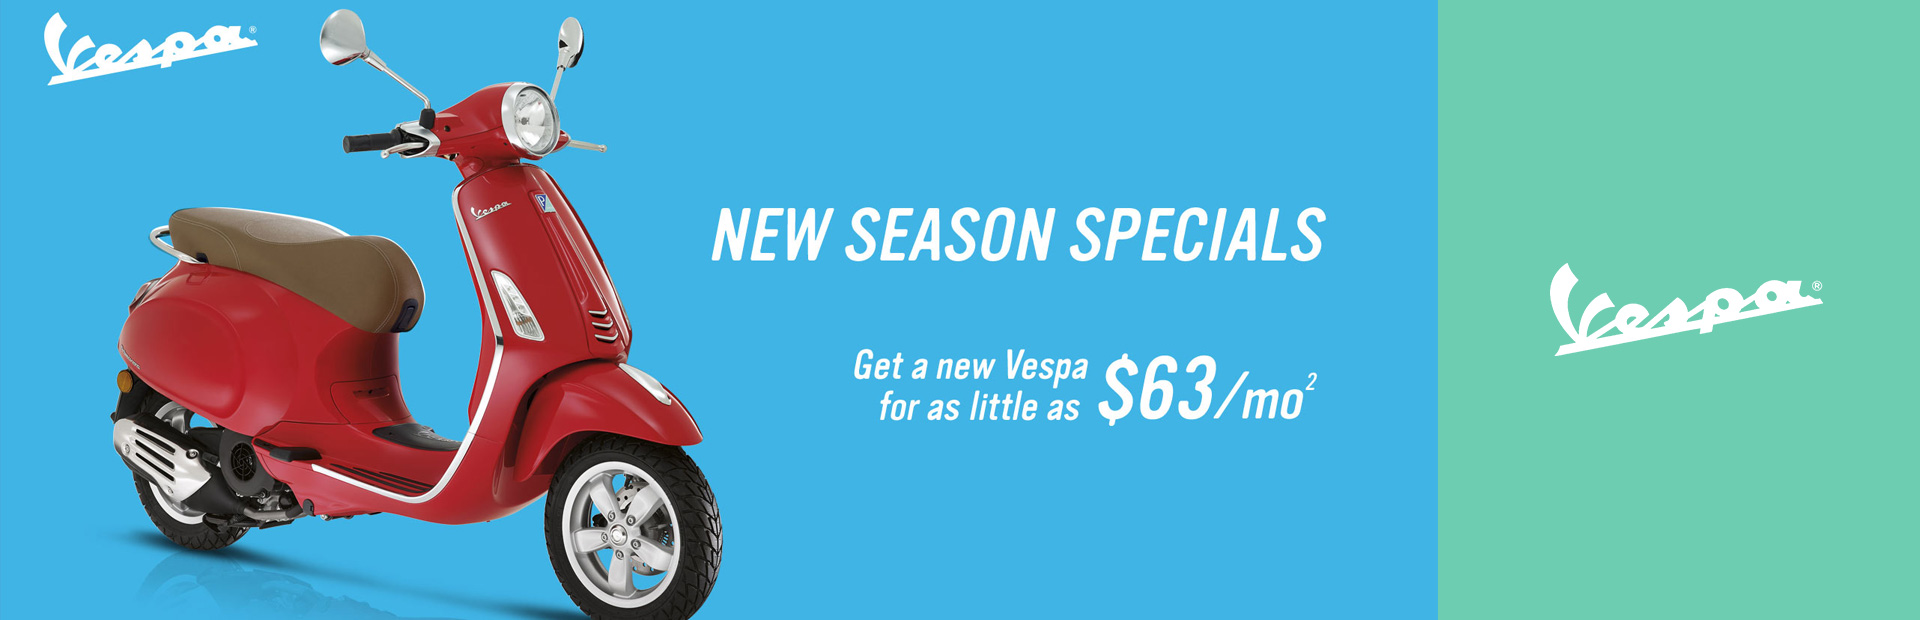 Vespa: New Season Specials